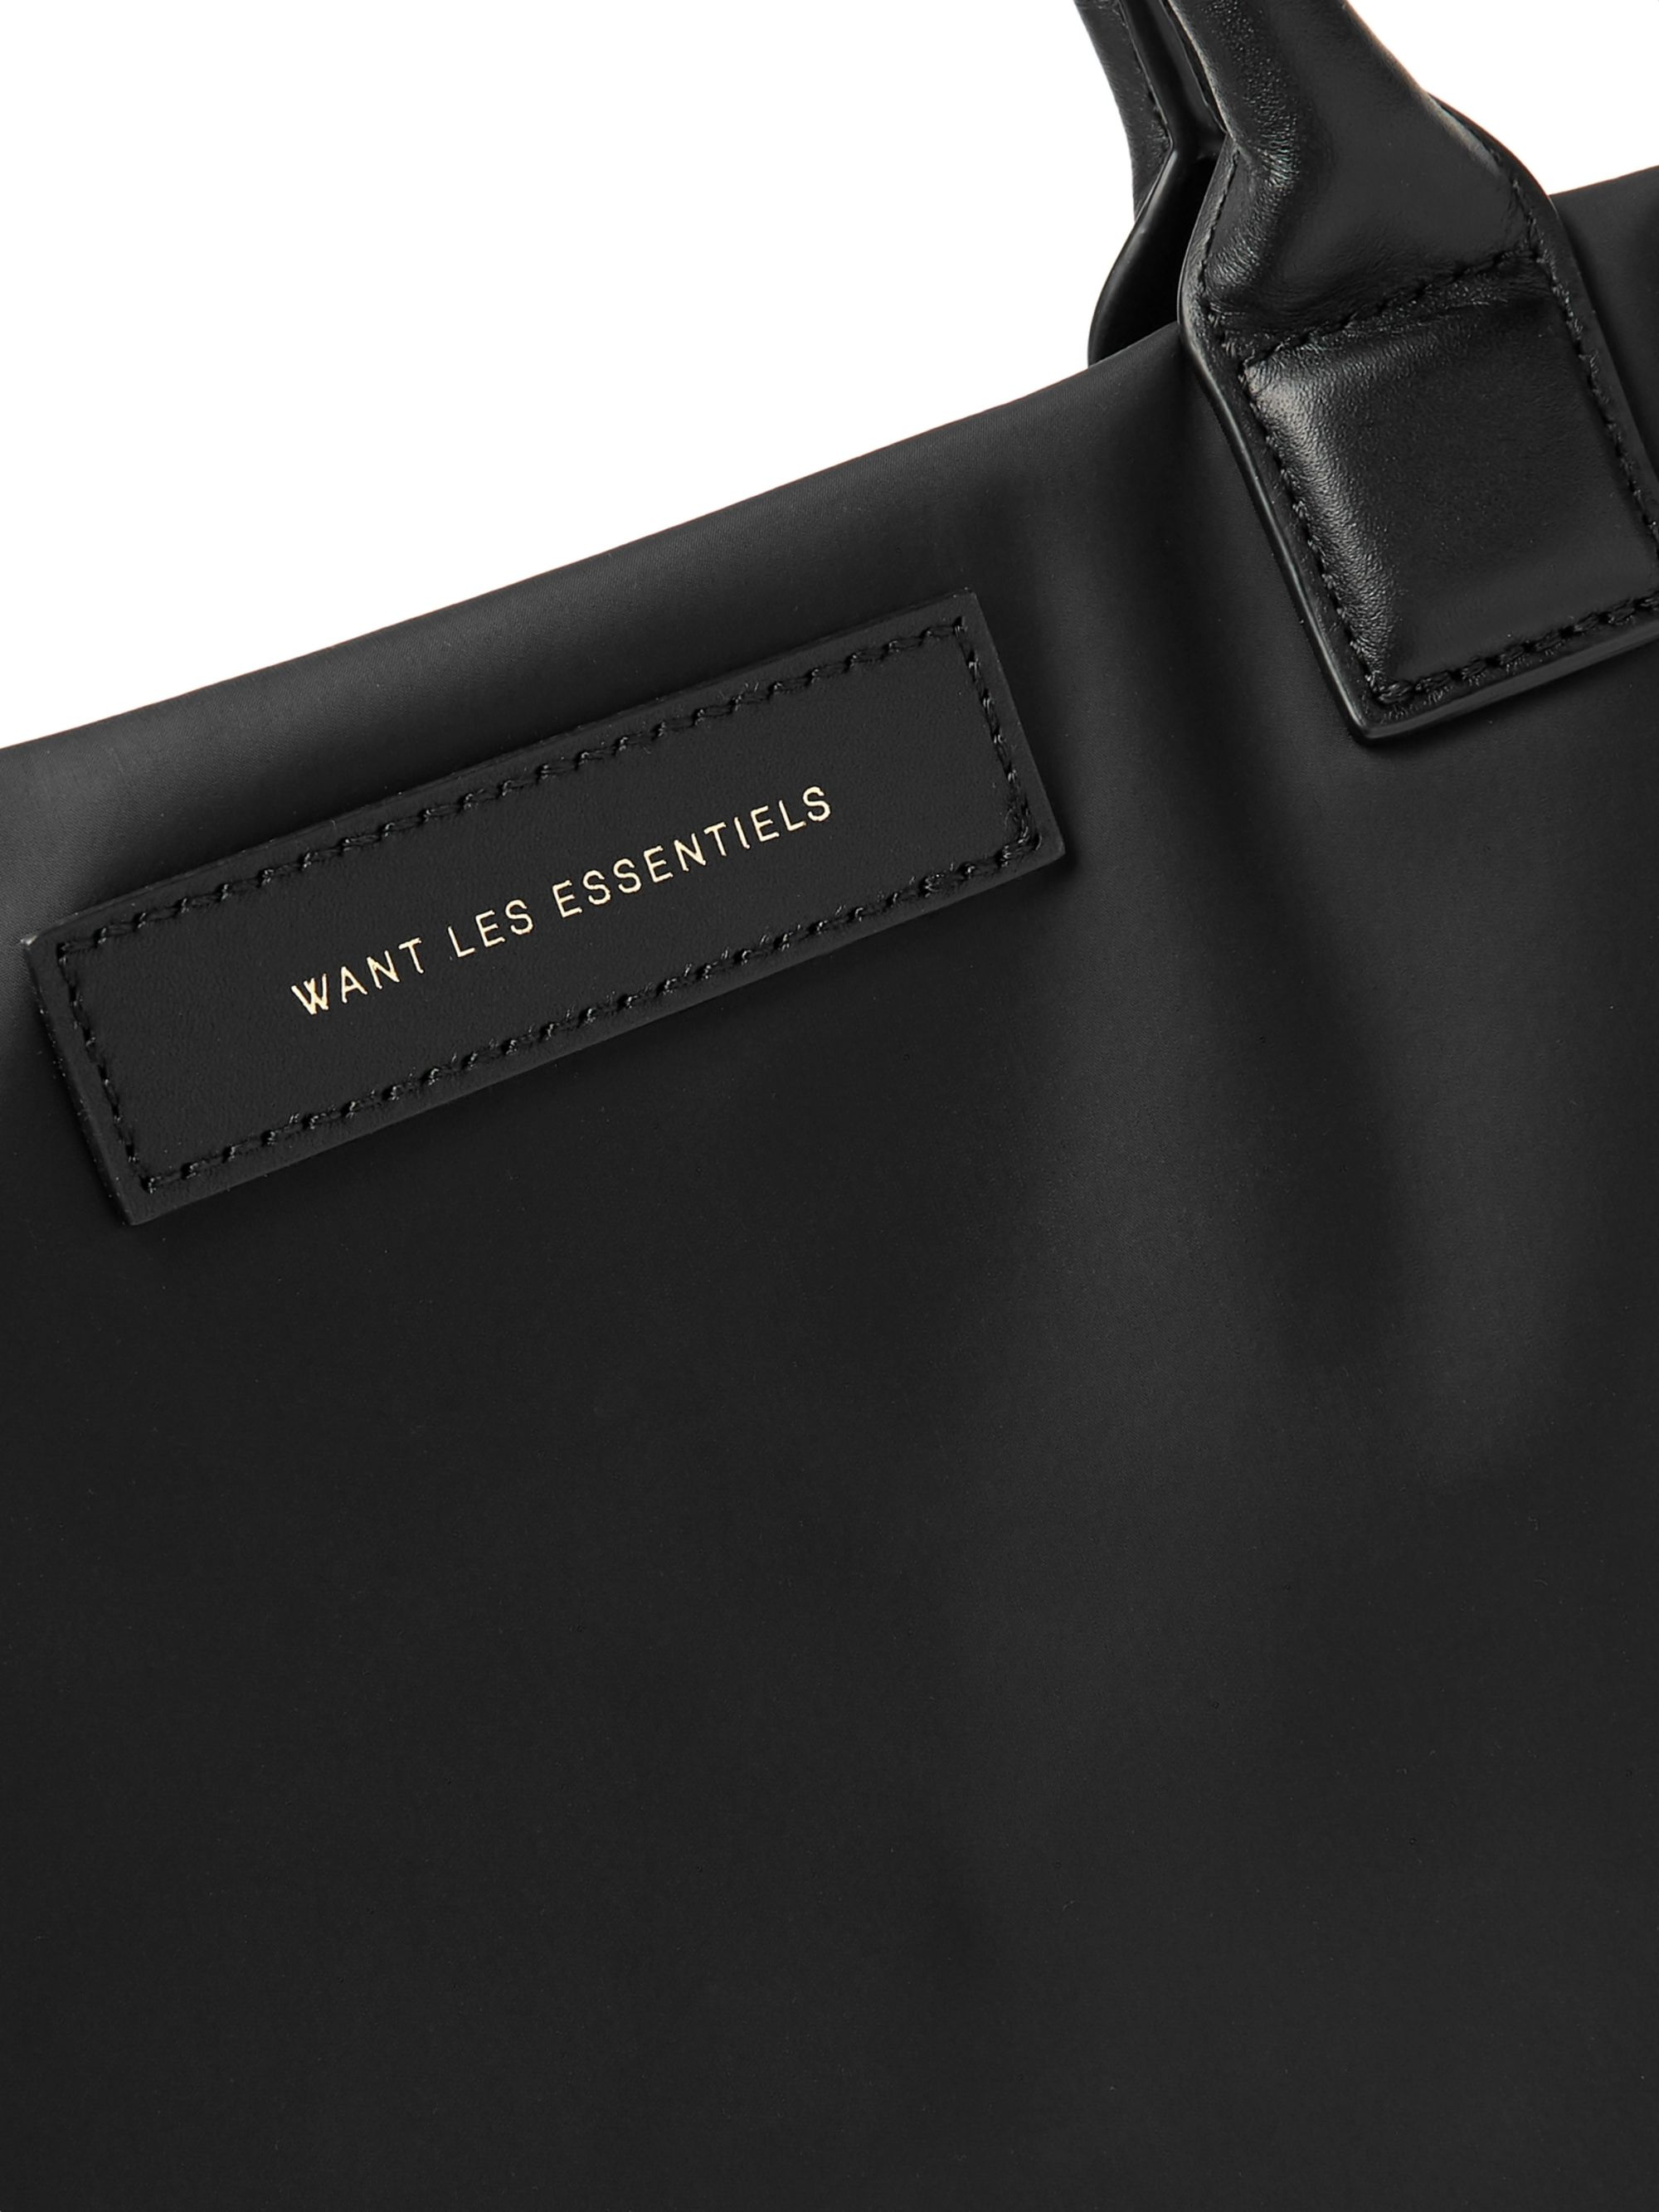 WANT LES ESSENTIELS O'Hare Leather-Trimmed Nylon Tote Bag